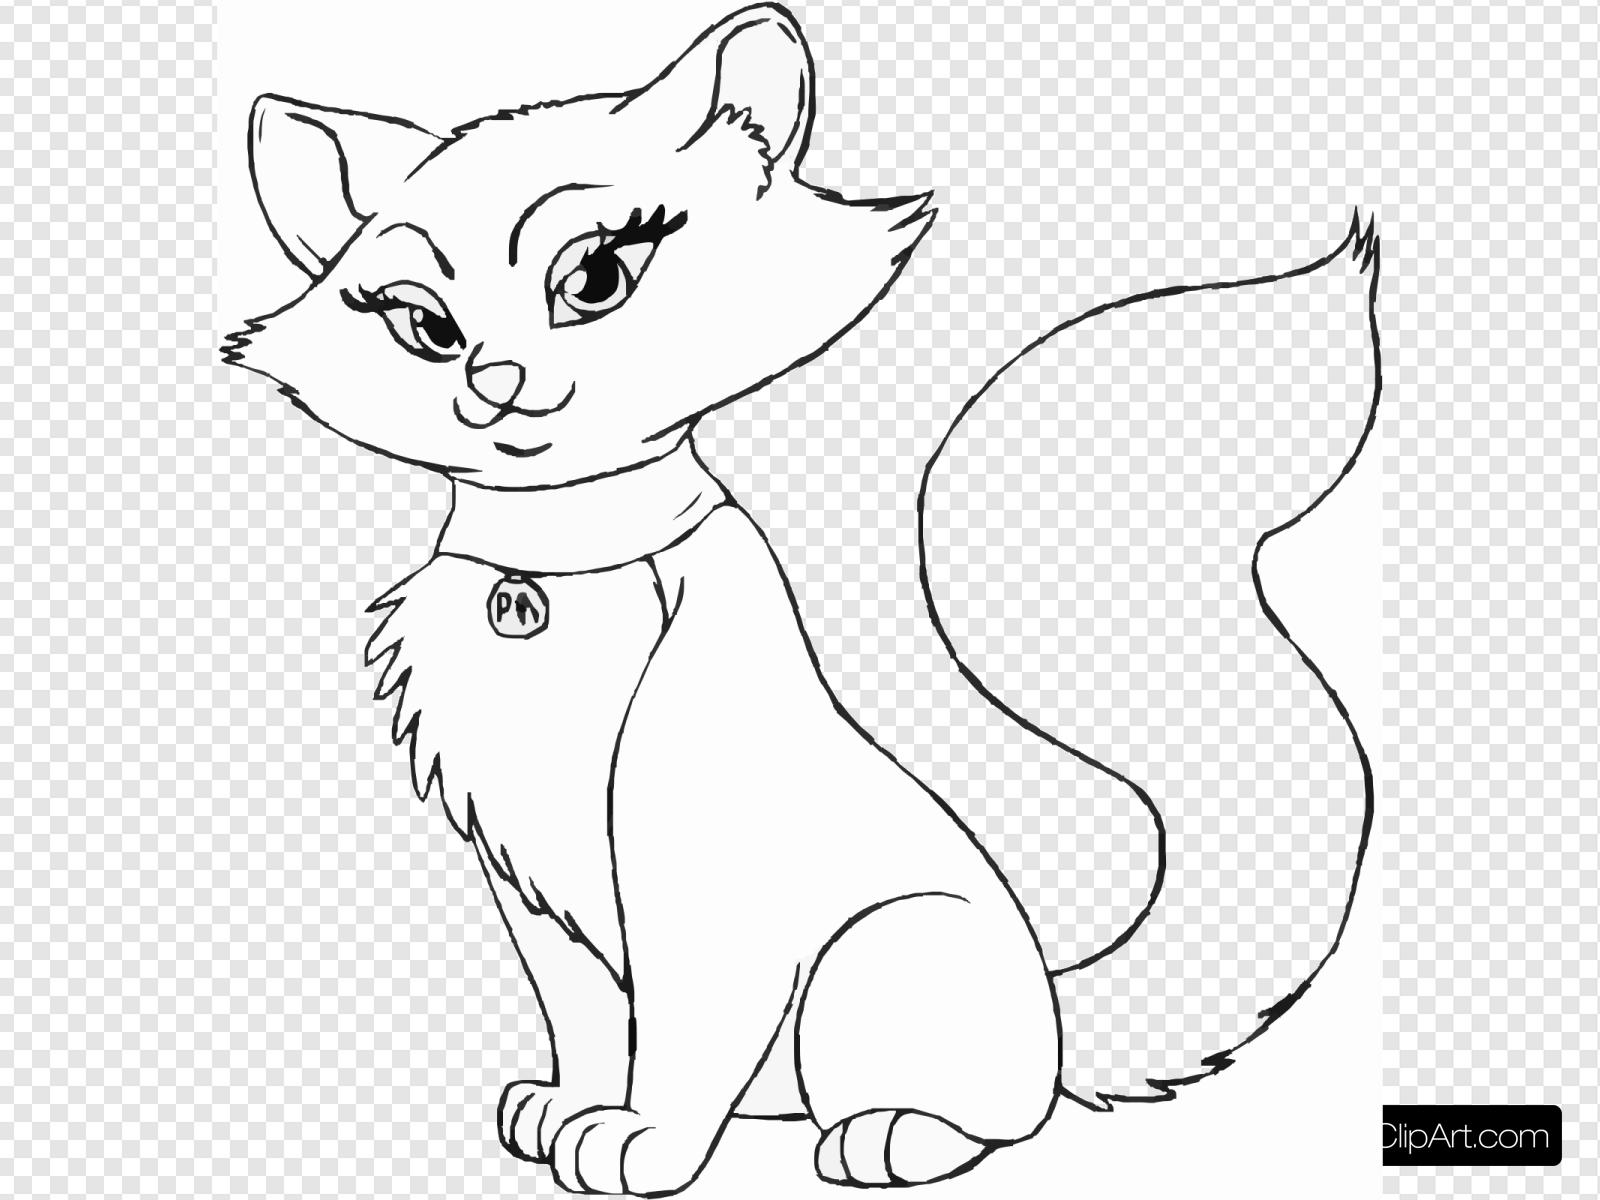 How To Draw A Cartoon Cat Step Svg Vector How To Draw A Cartoon Cat Step Clip Art Svg Clipart